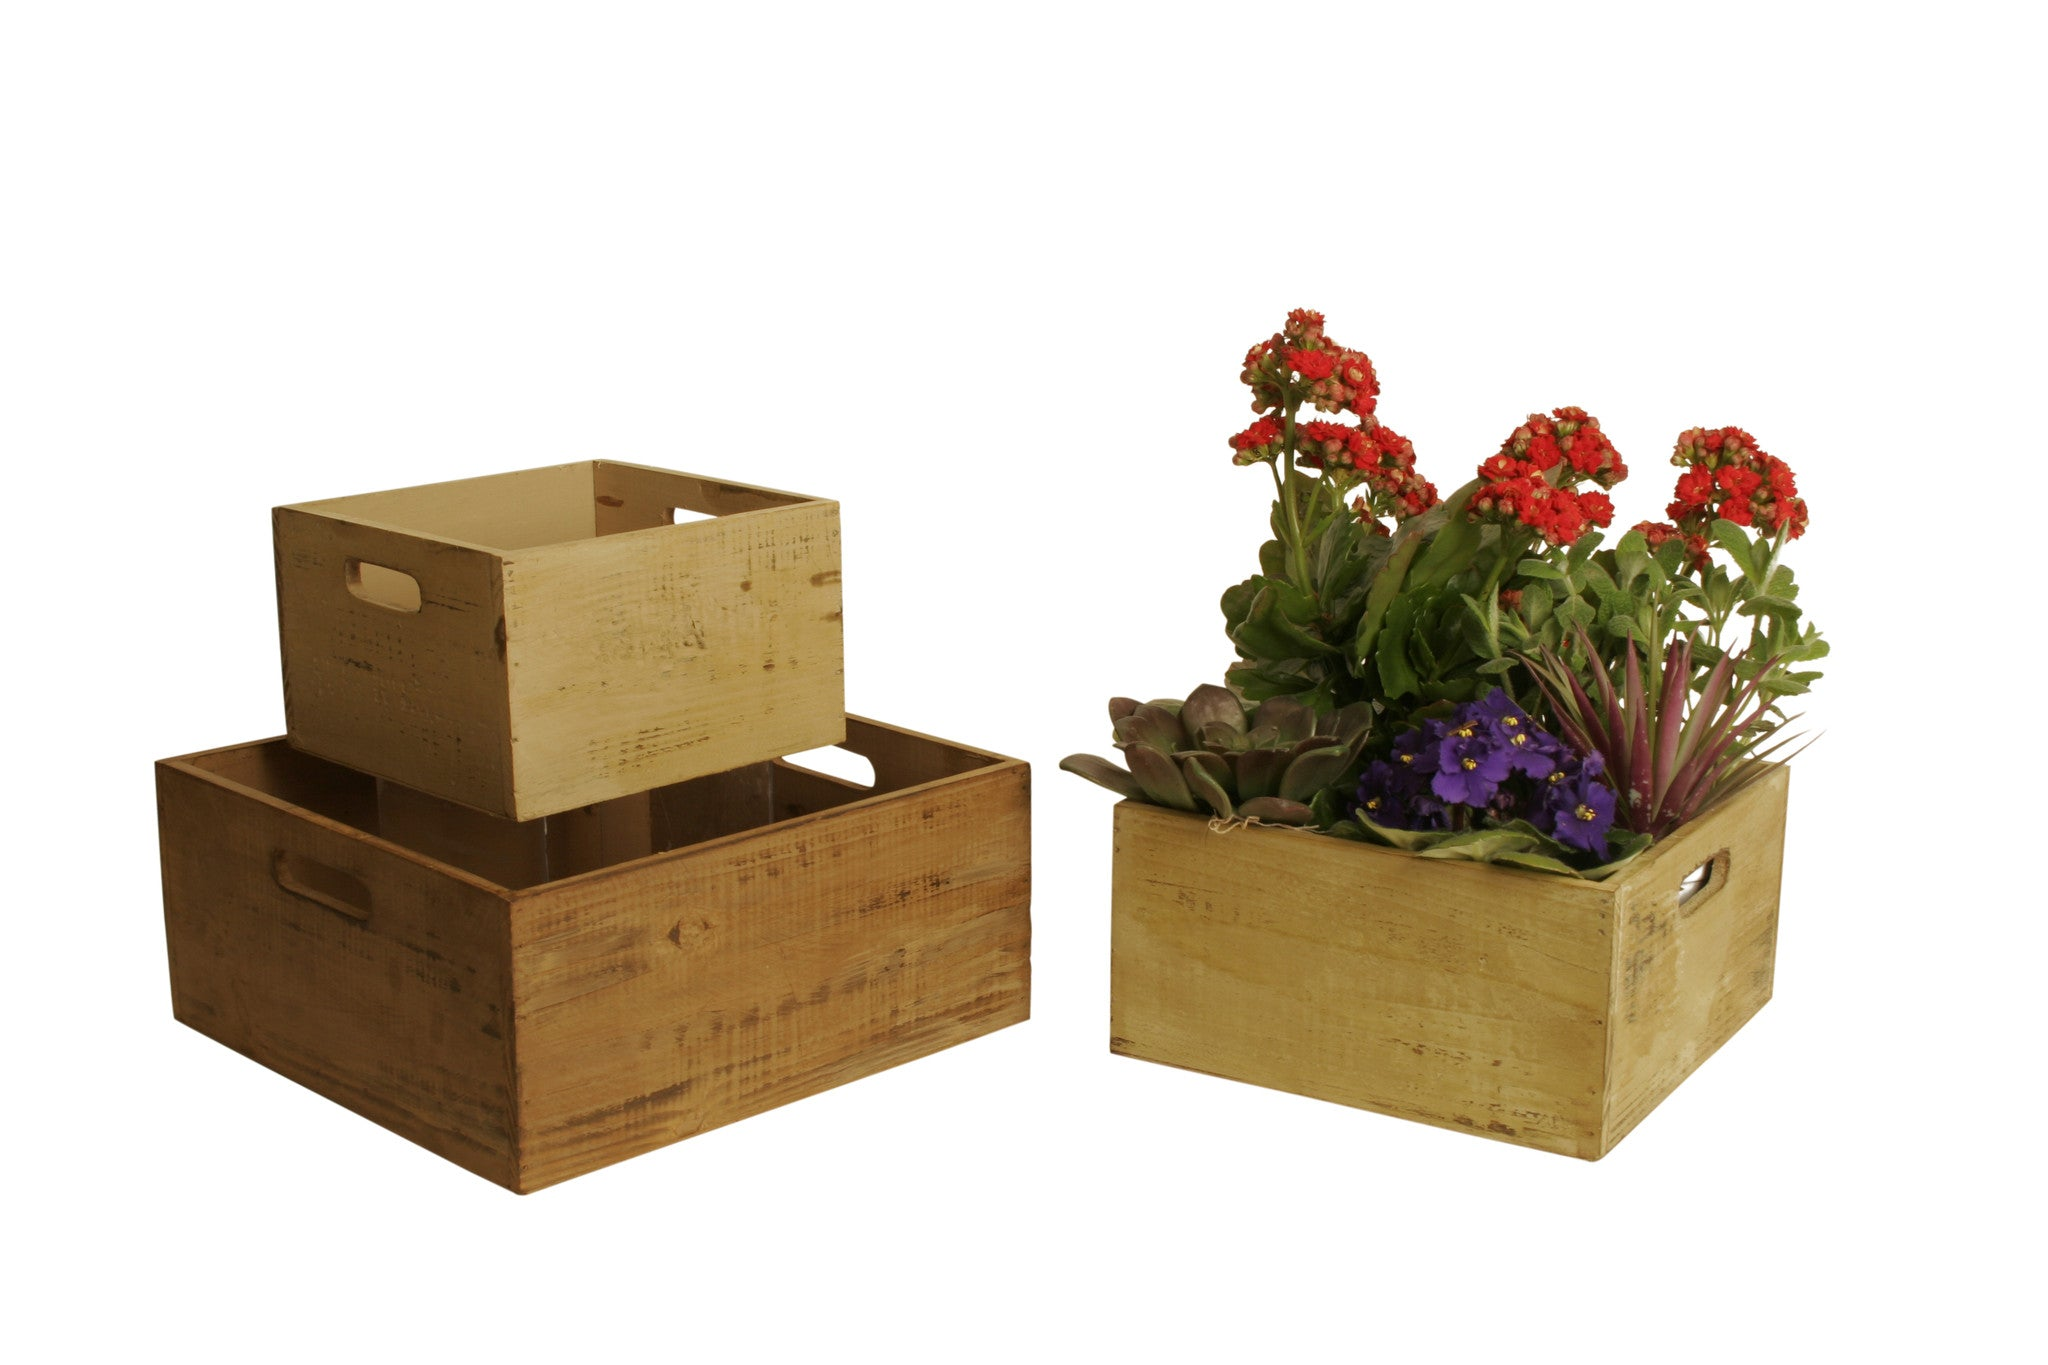 Set of 3 Sq Rustic Wooden Crates Asst.-Wald Imports